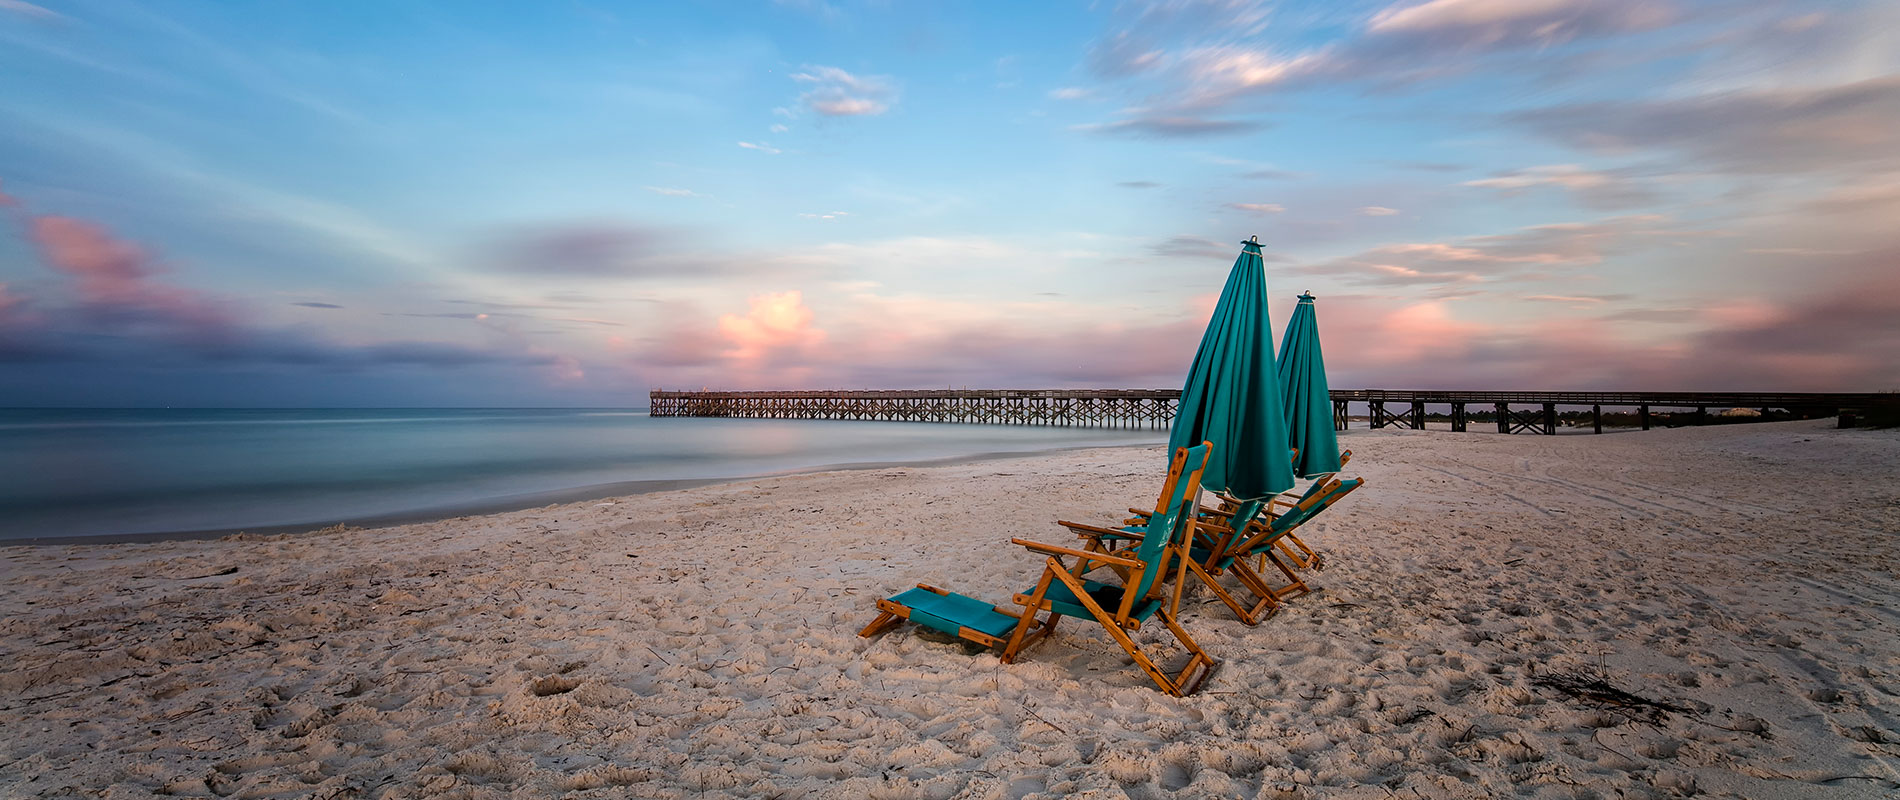 Mexico Beach, Florida - 2016 Photography Contest Winner Bill Fauth